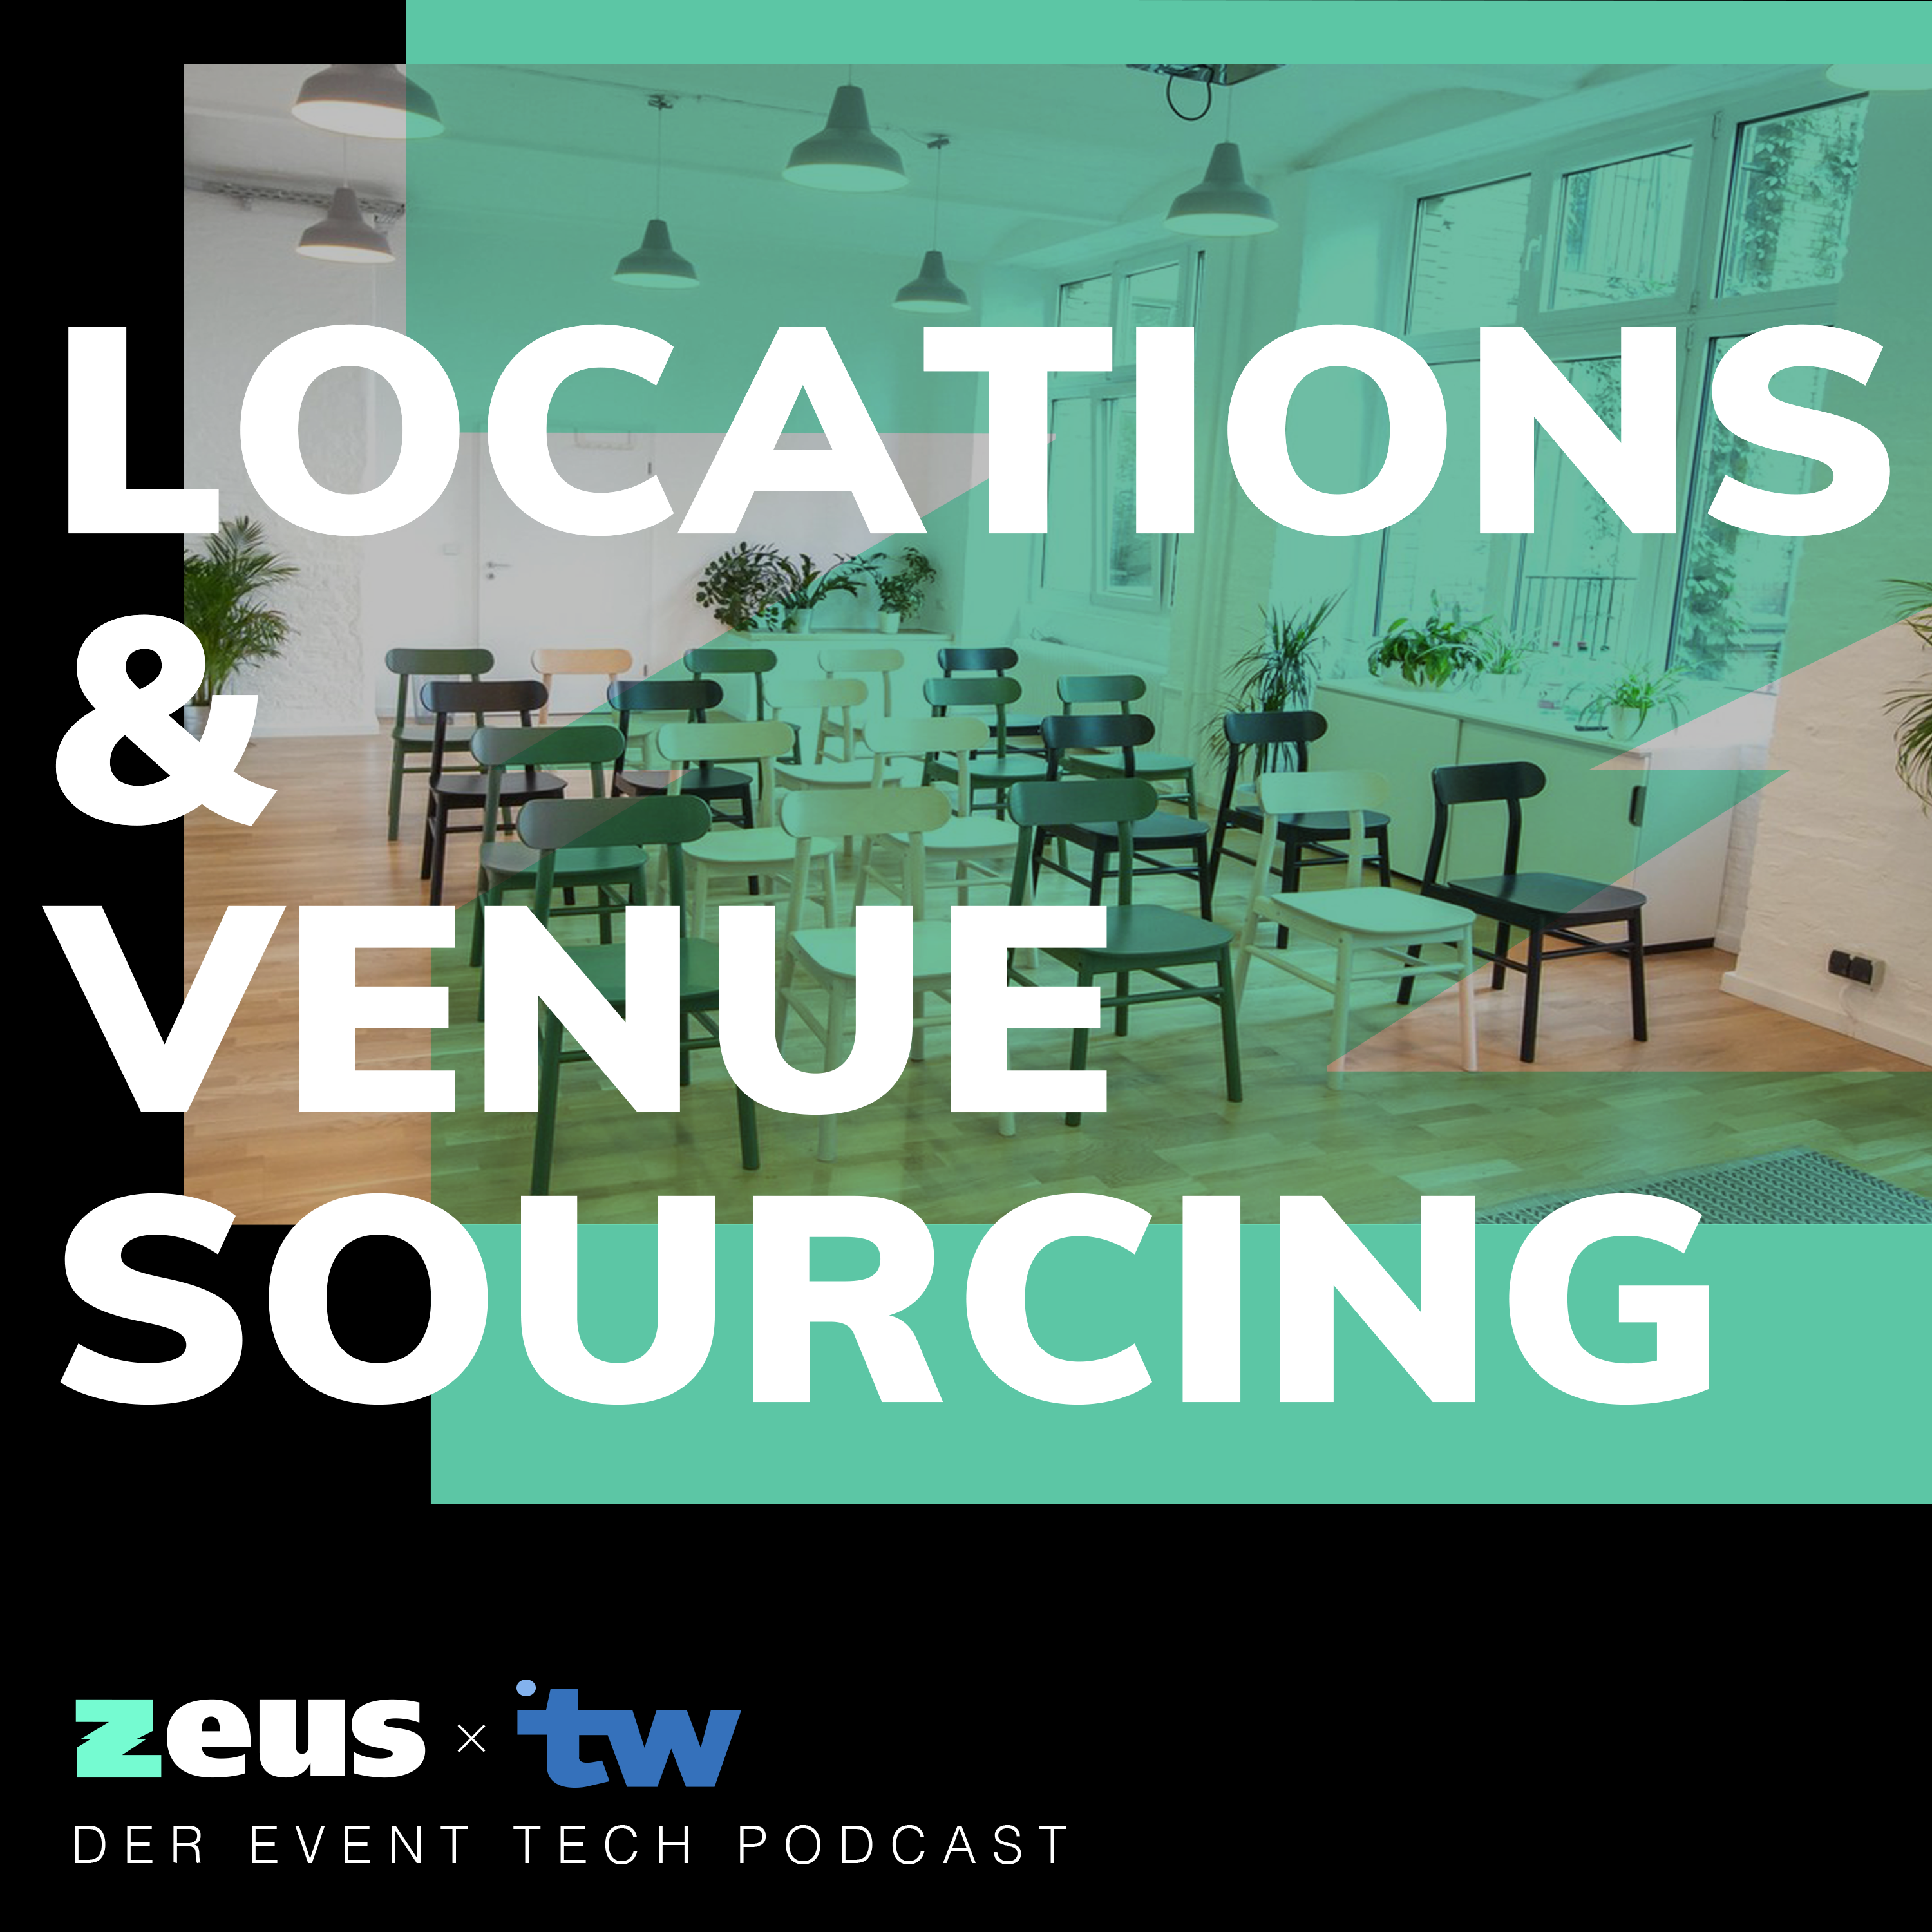 Locations & Venue Sourcing – Sharing Economy